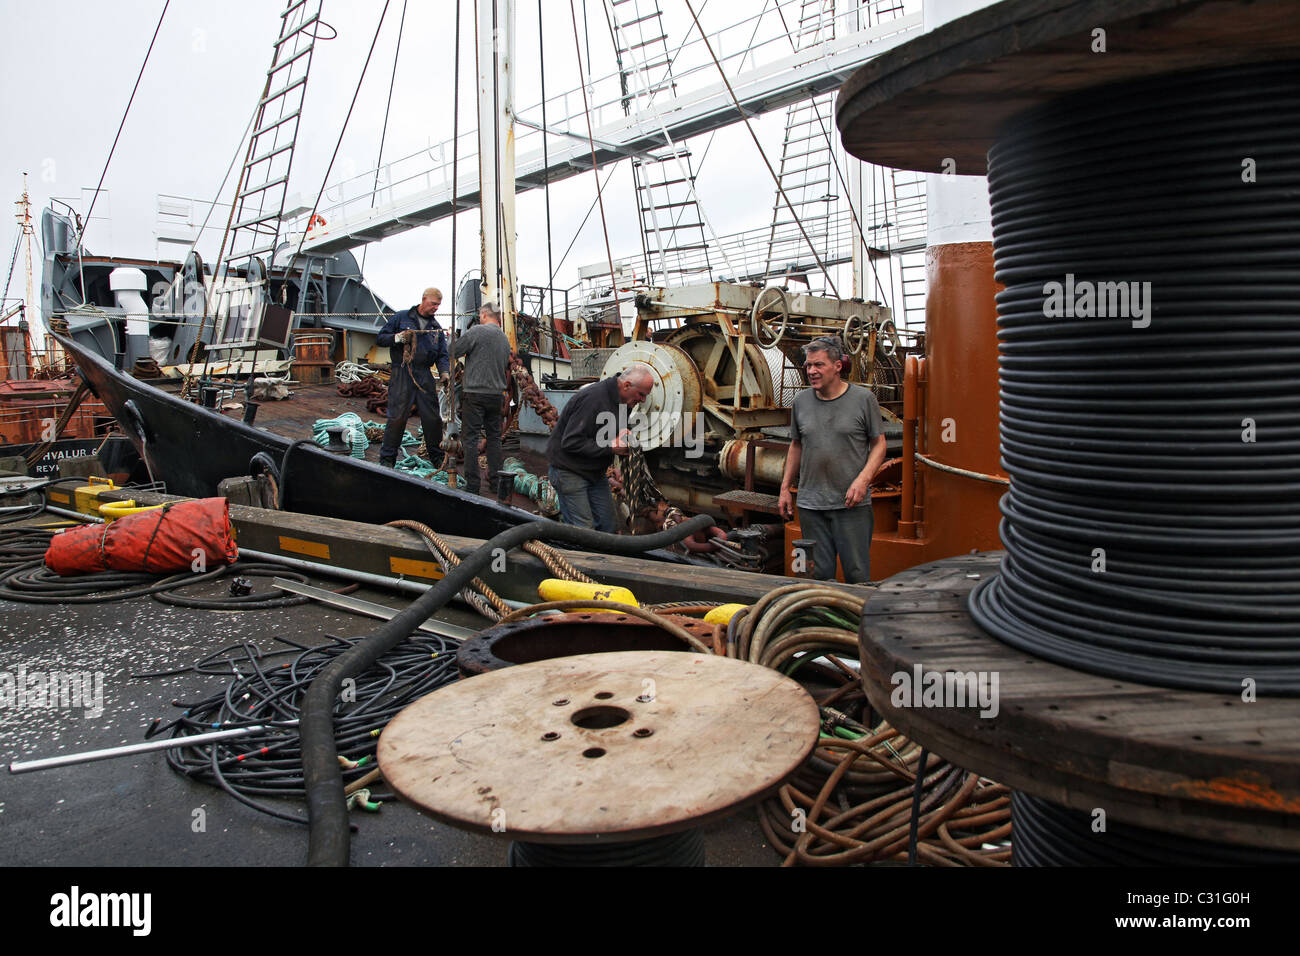 WHALE FISHING, THE CREW OF ONE OF KRISTJAN LOFTSSON'S WHALERS READY TO CAST OFF FROM THE PORT OF REYKJAVIK, ICELAND, Stock Photo